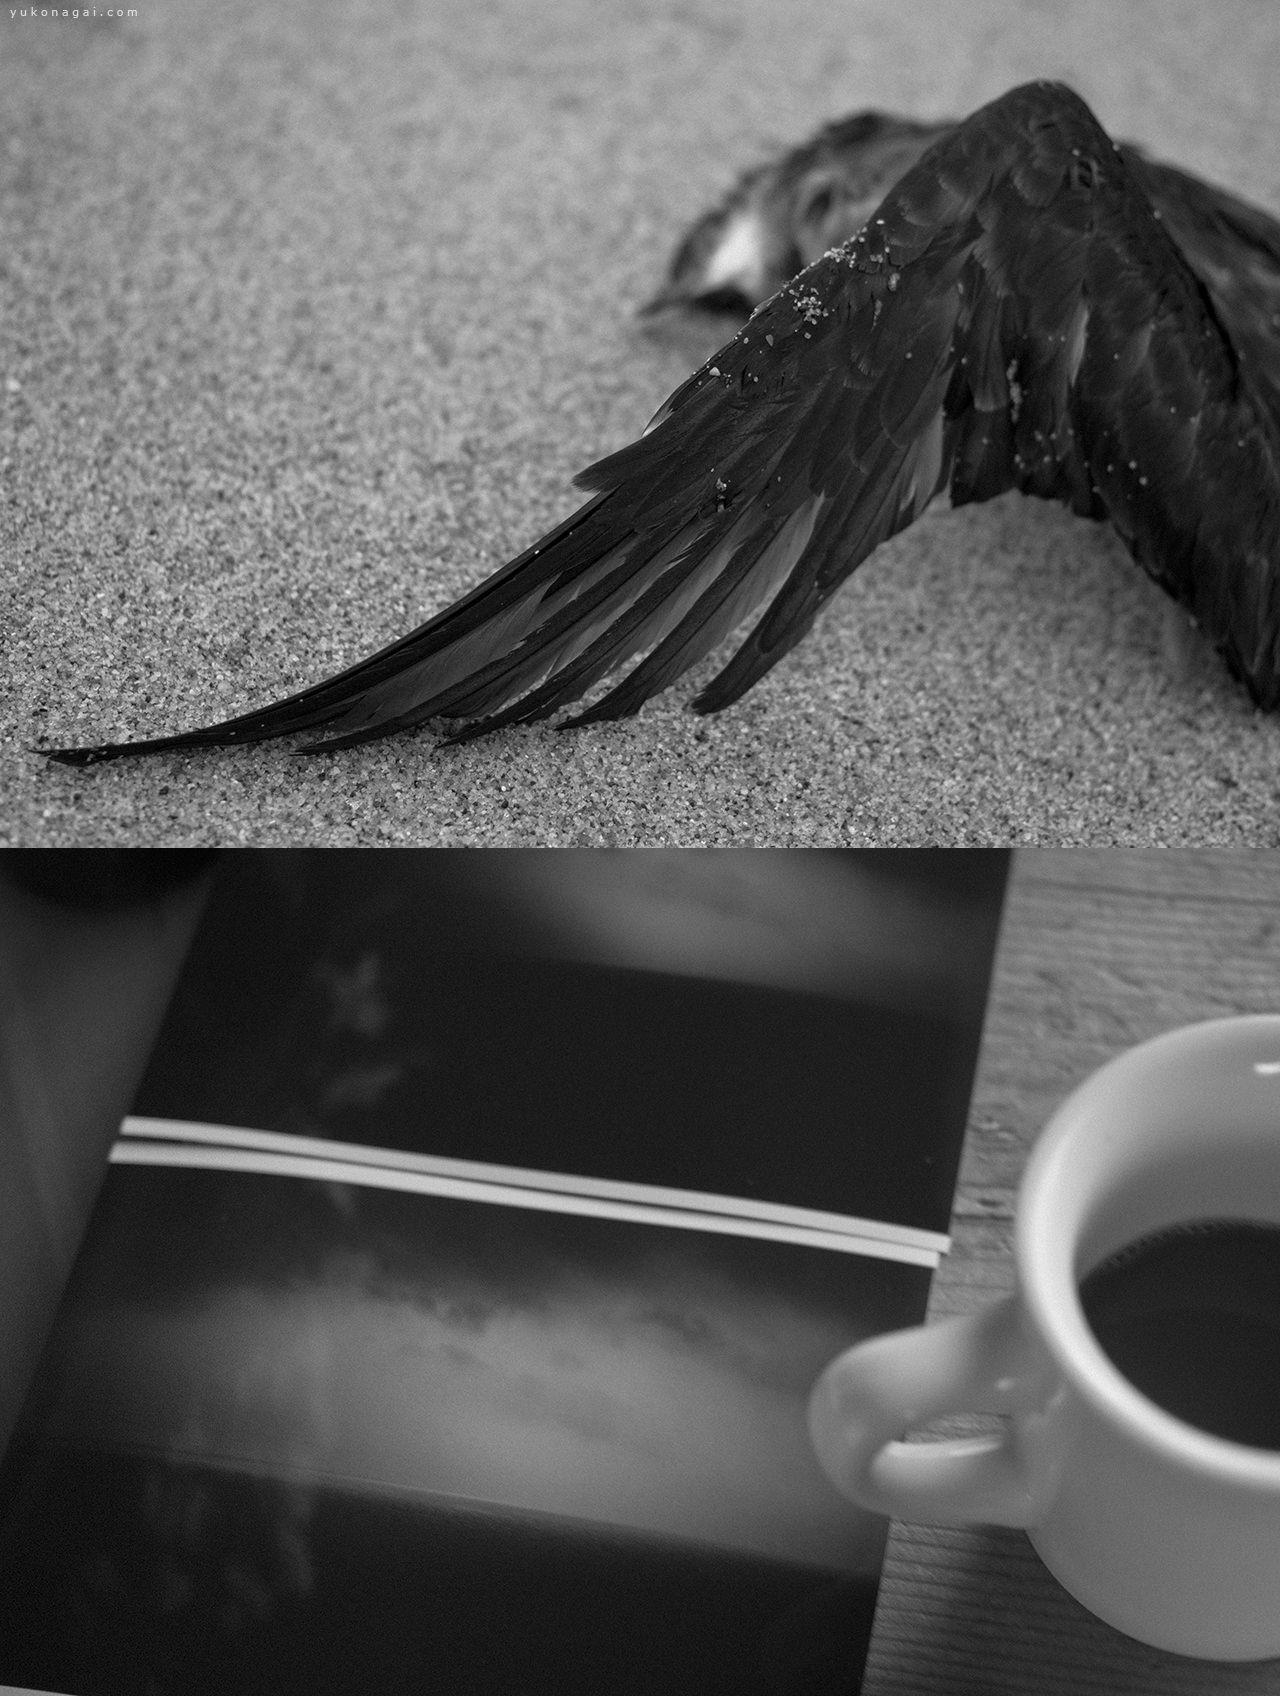 A bird wing and photographic prints of ocean horizons.